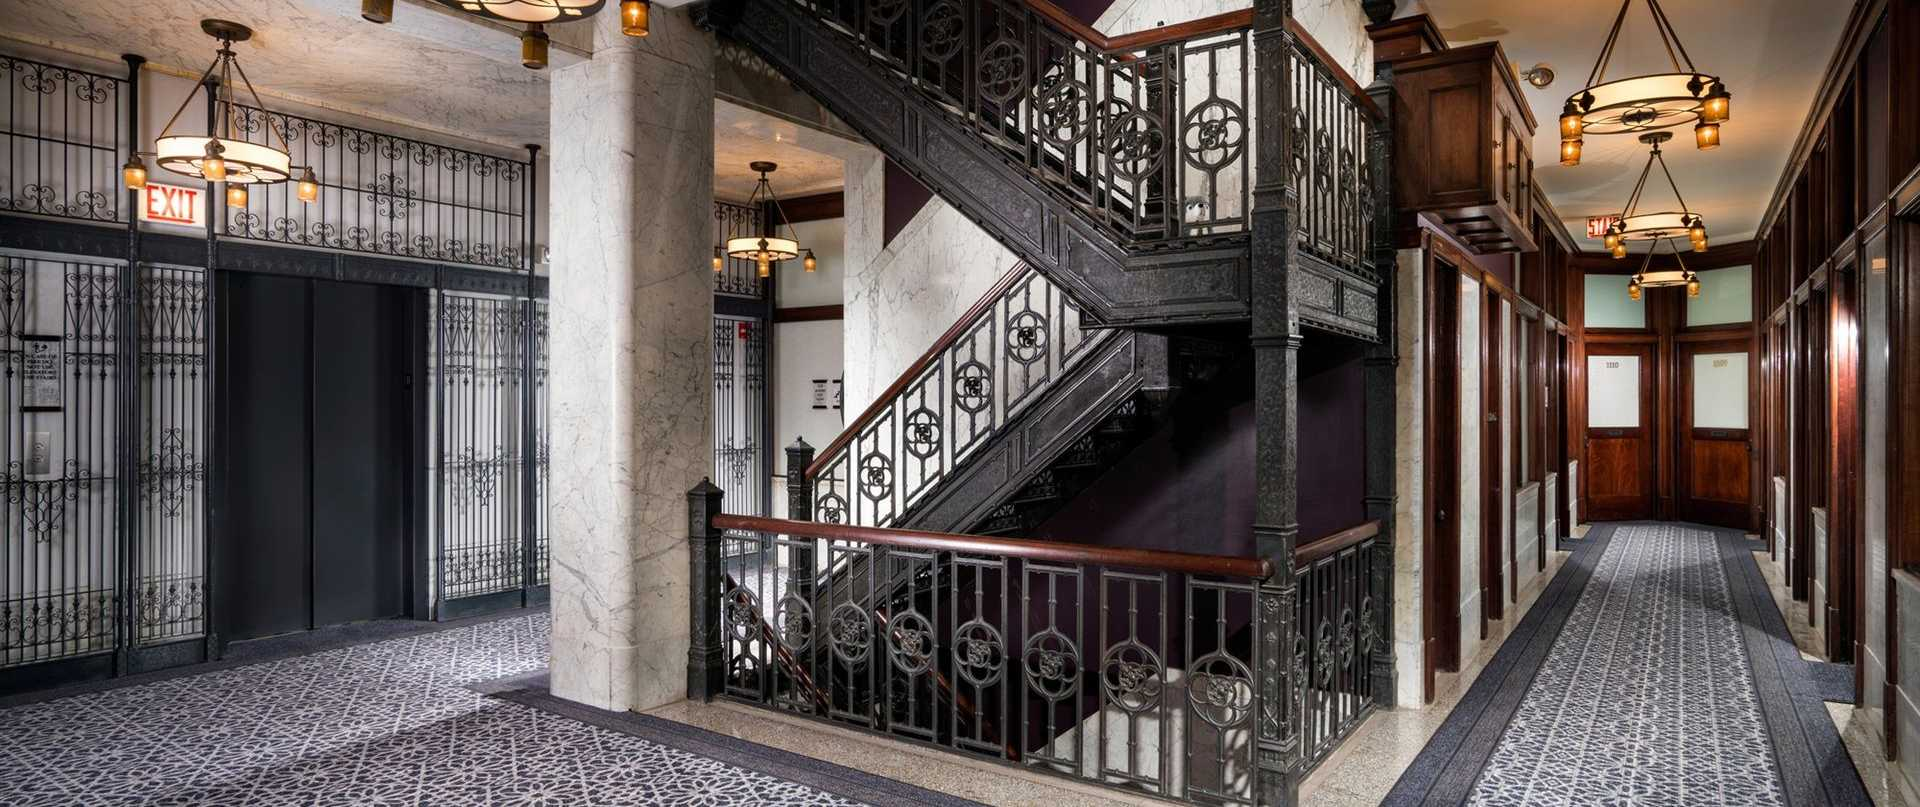 the-alise-chicago-interiors-11th-floor-stairs.jpg